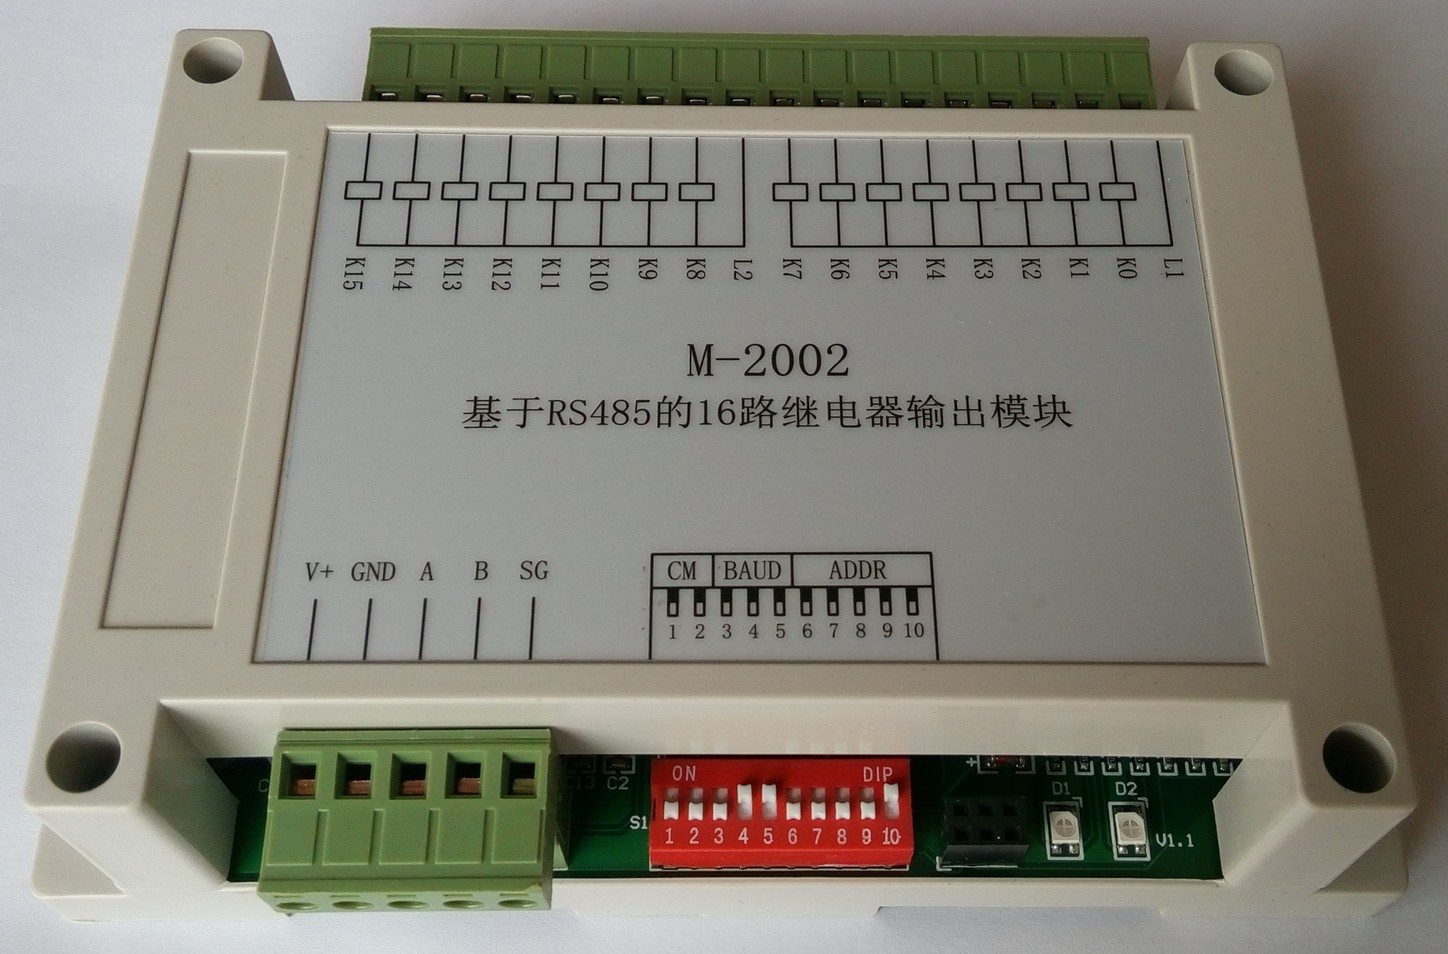 16 Road Relay Output DO Module RS485 Modbus Data Acquisition Communication Board Card PLC Extended IO16 Road Relay Output DO Module RS485 Modbus Data Acquisition Communication Board Card PLC Extended IO